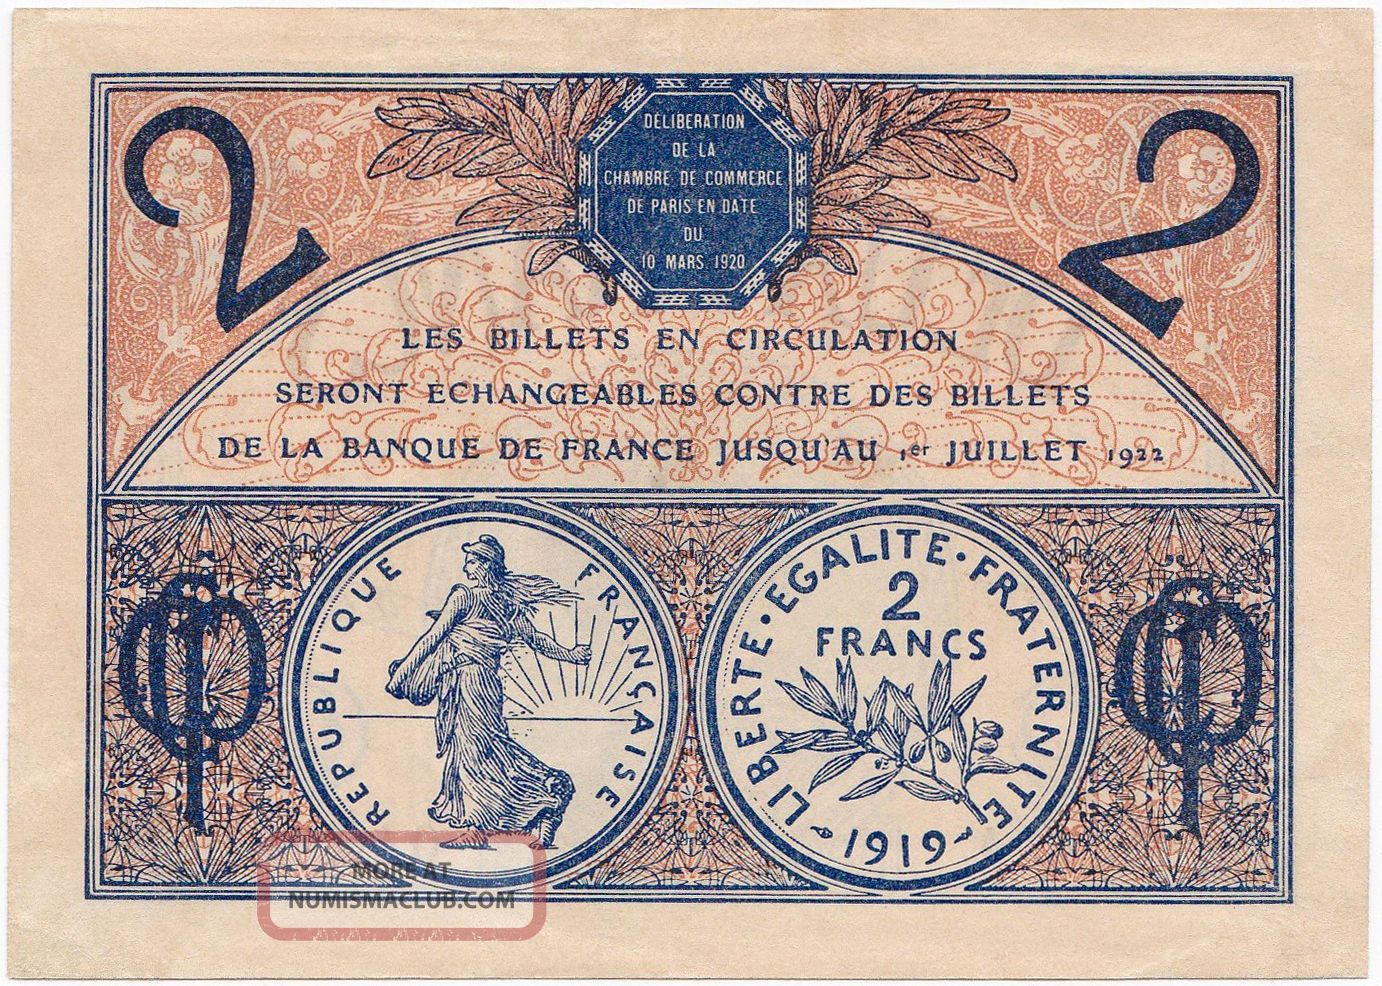 France 2 francs 1919 1922 xf chambre de commerce de paris for Chambre de commerce polonaise en france